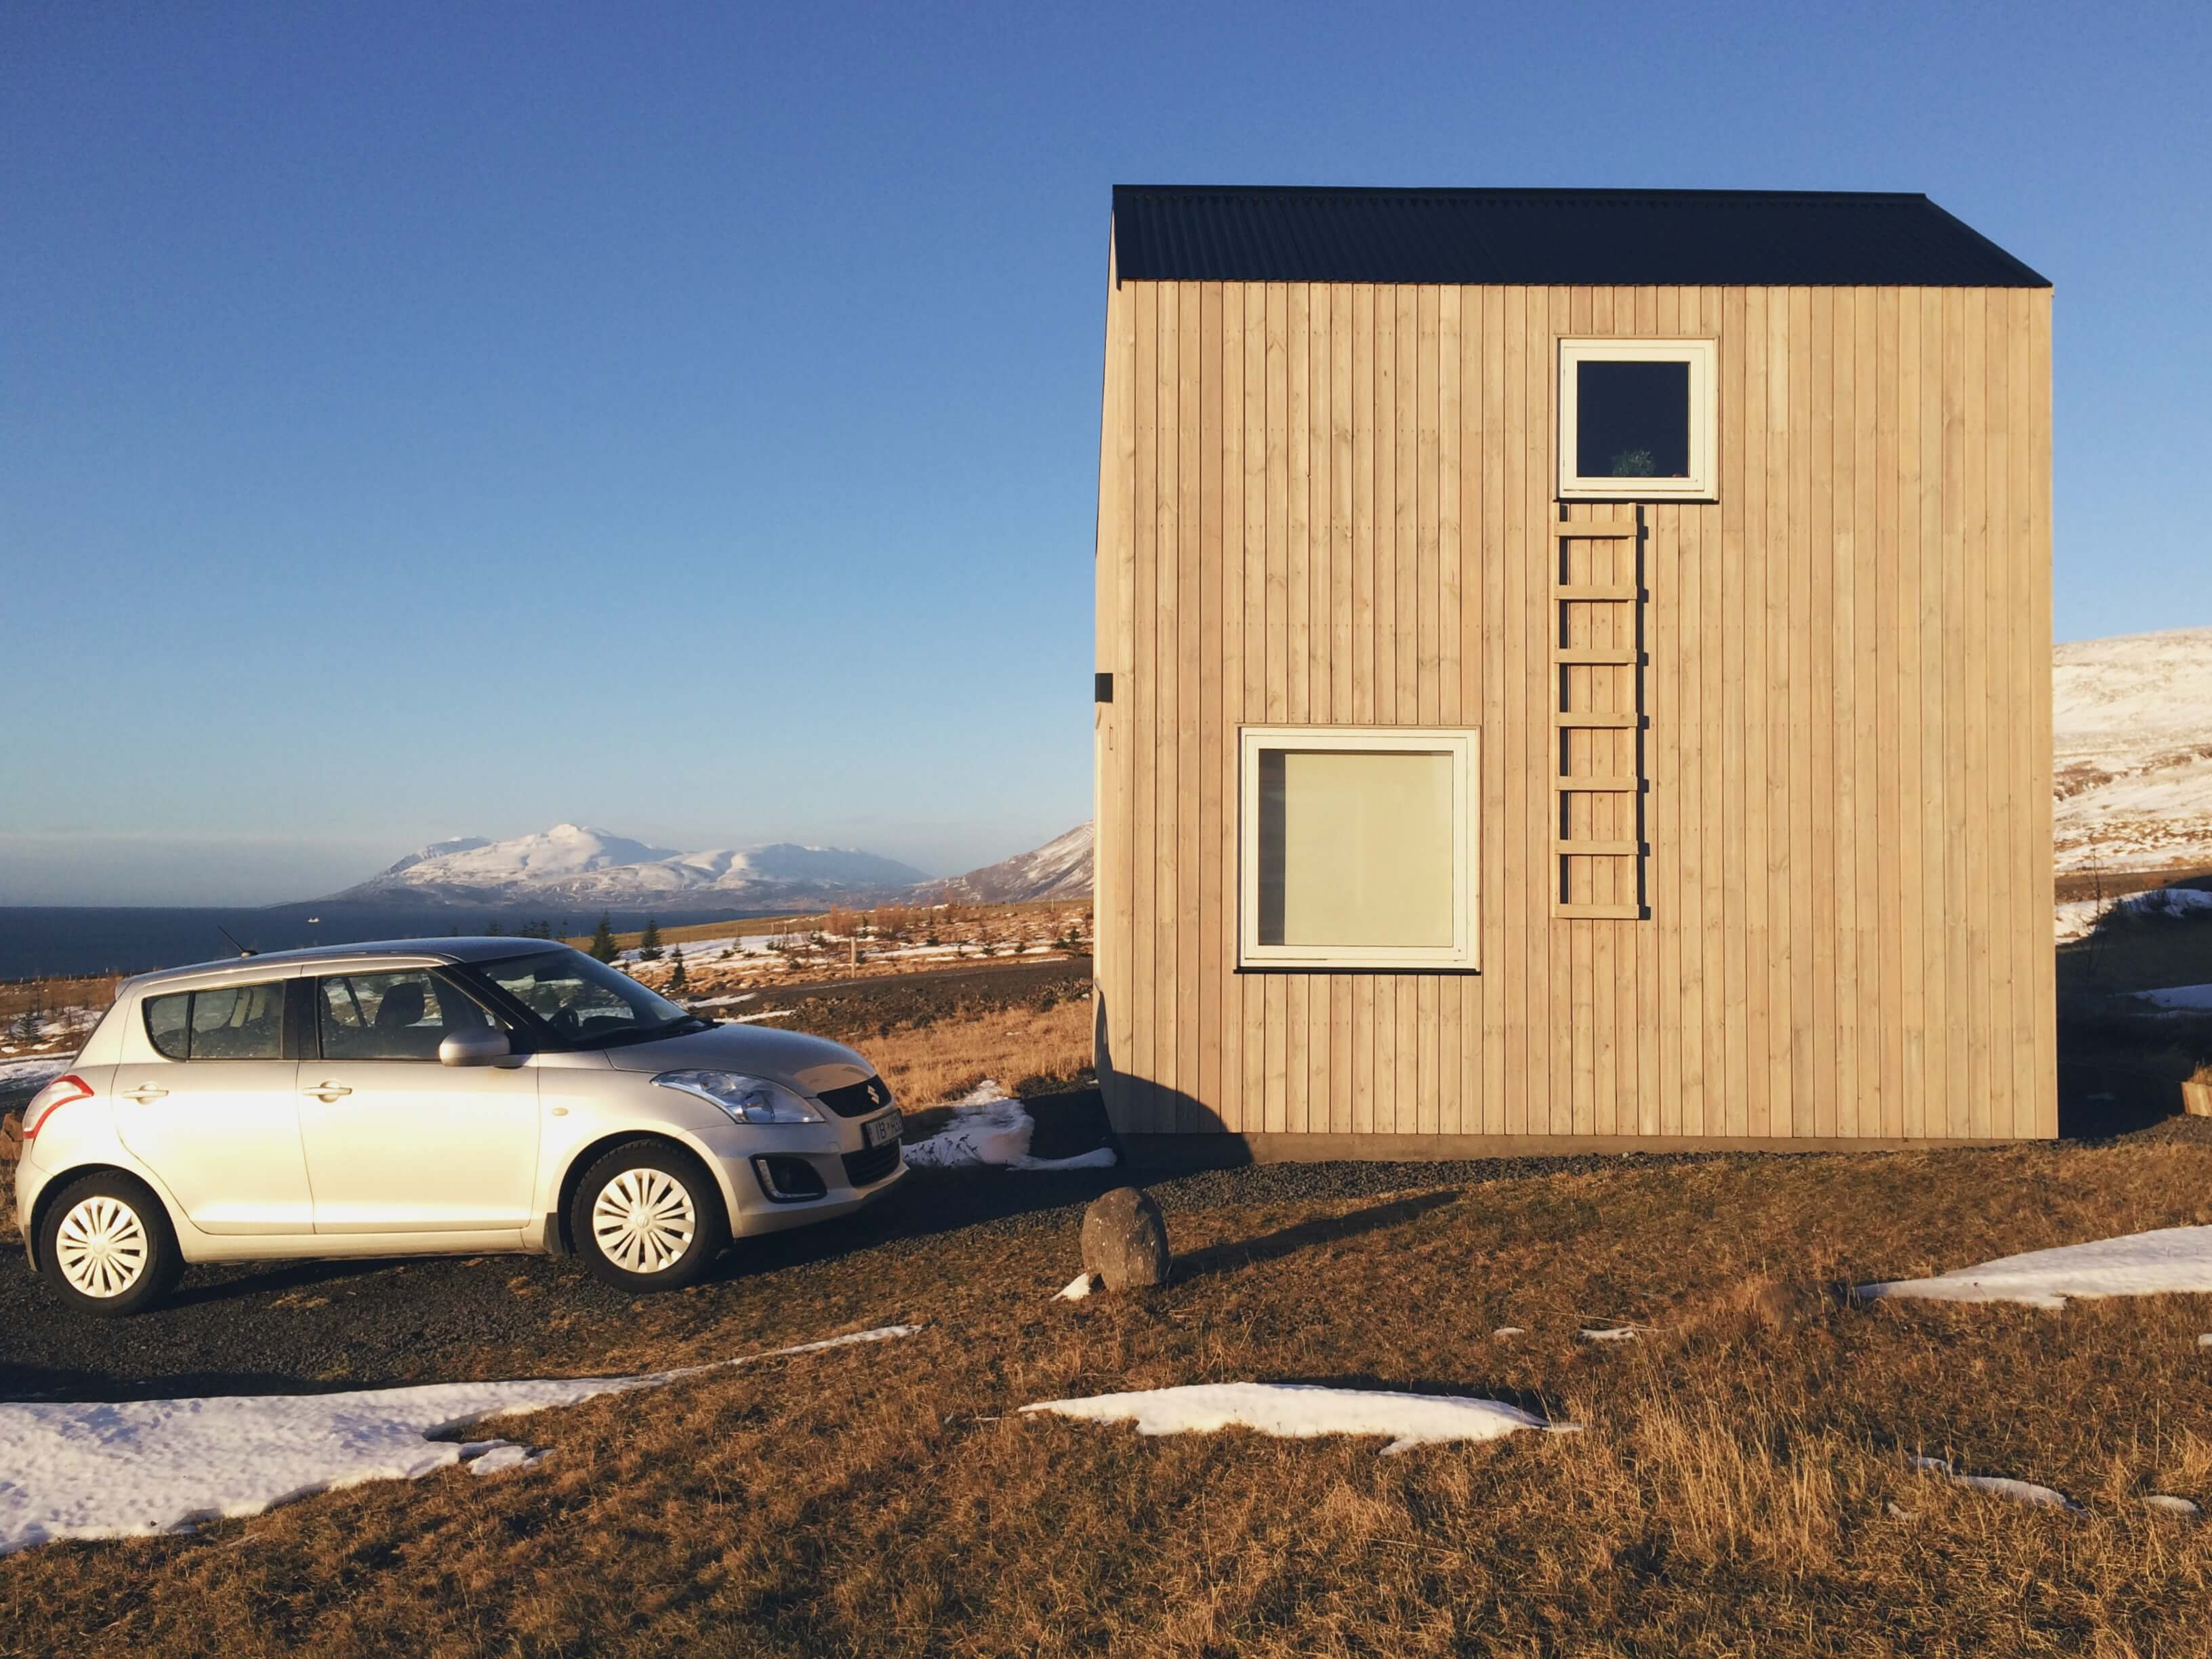 Akureyri unique cabin from Airbnb, Iceland